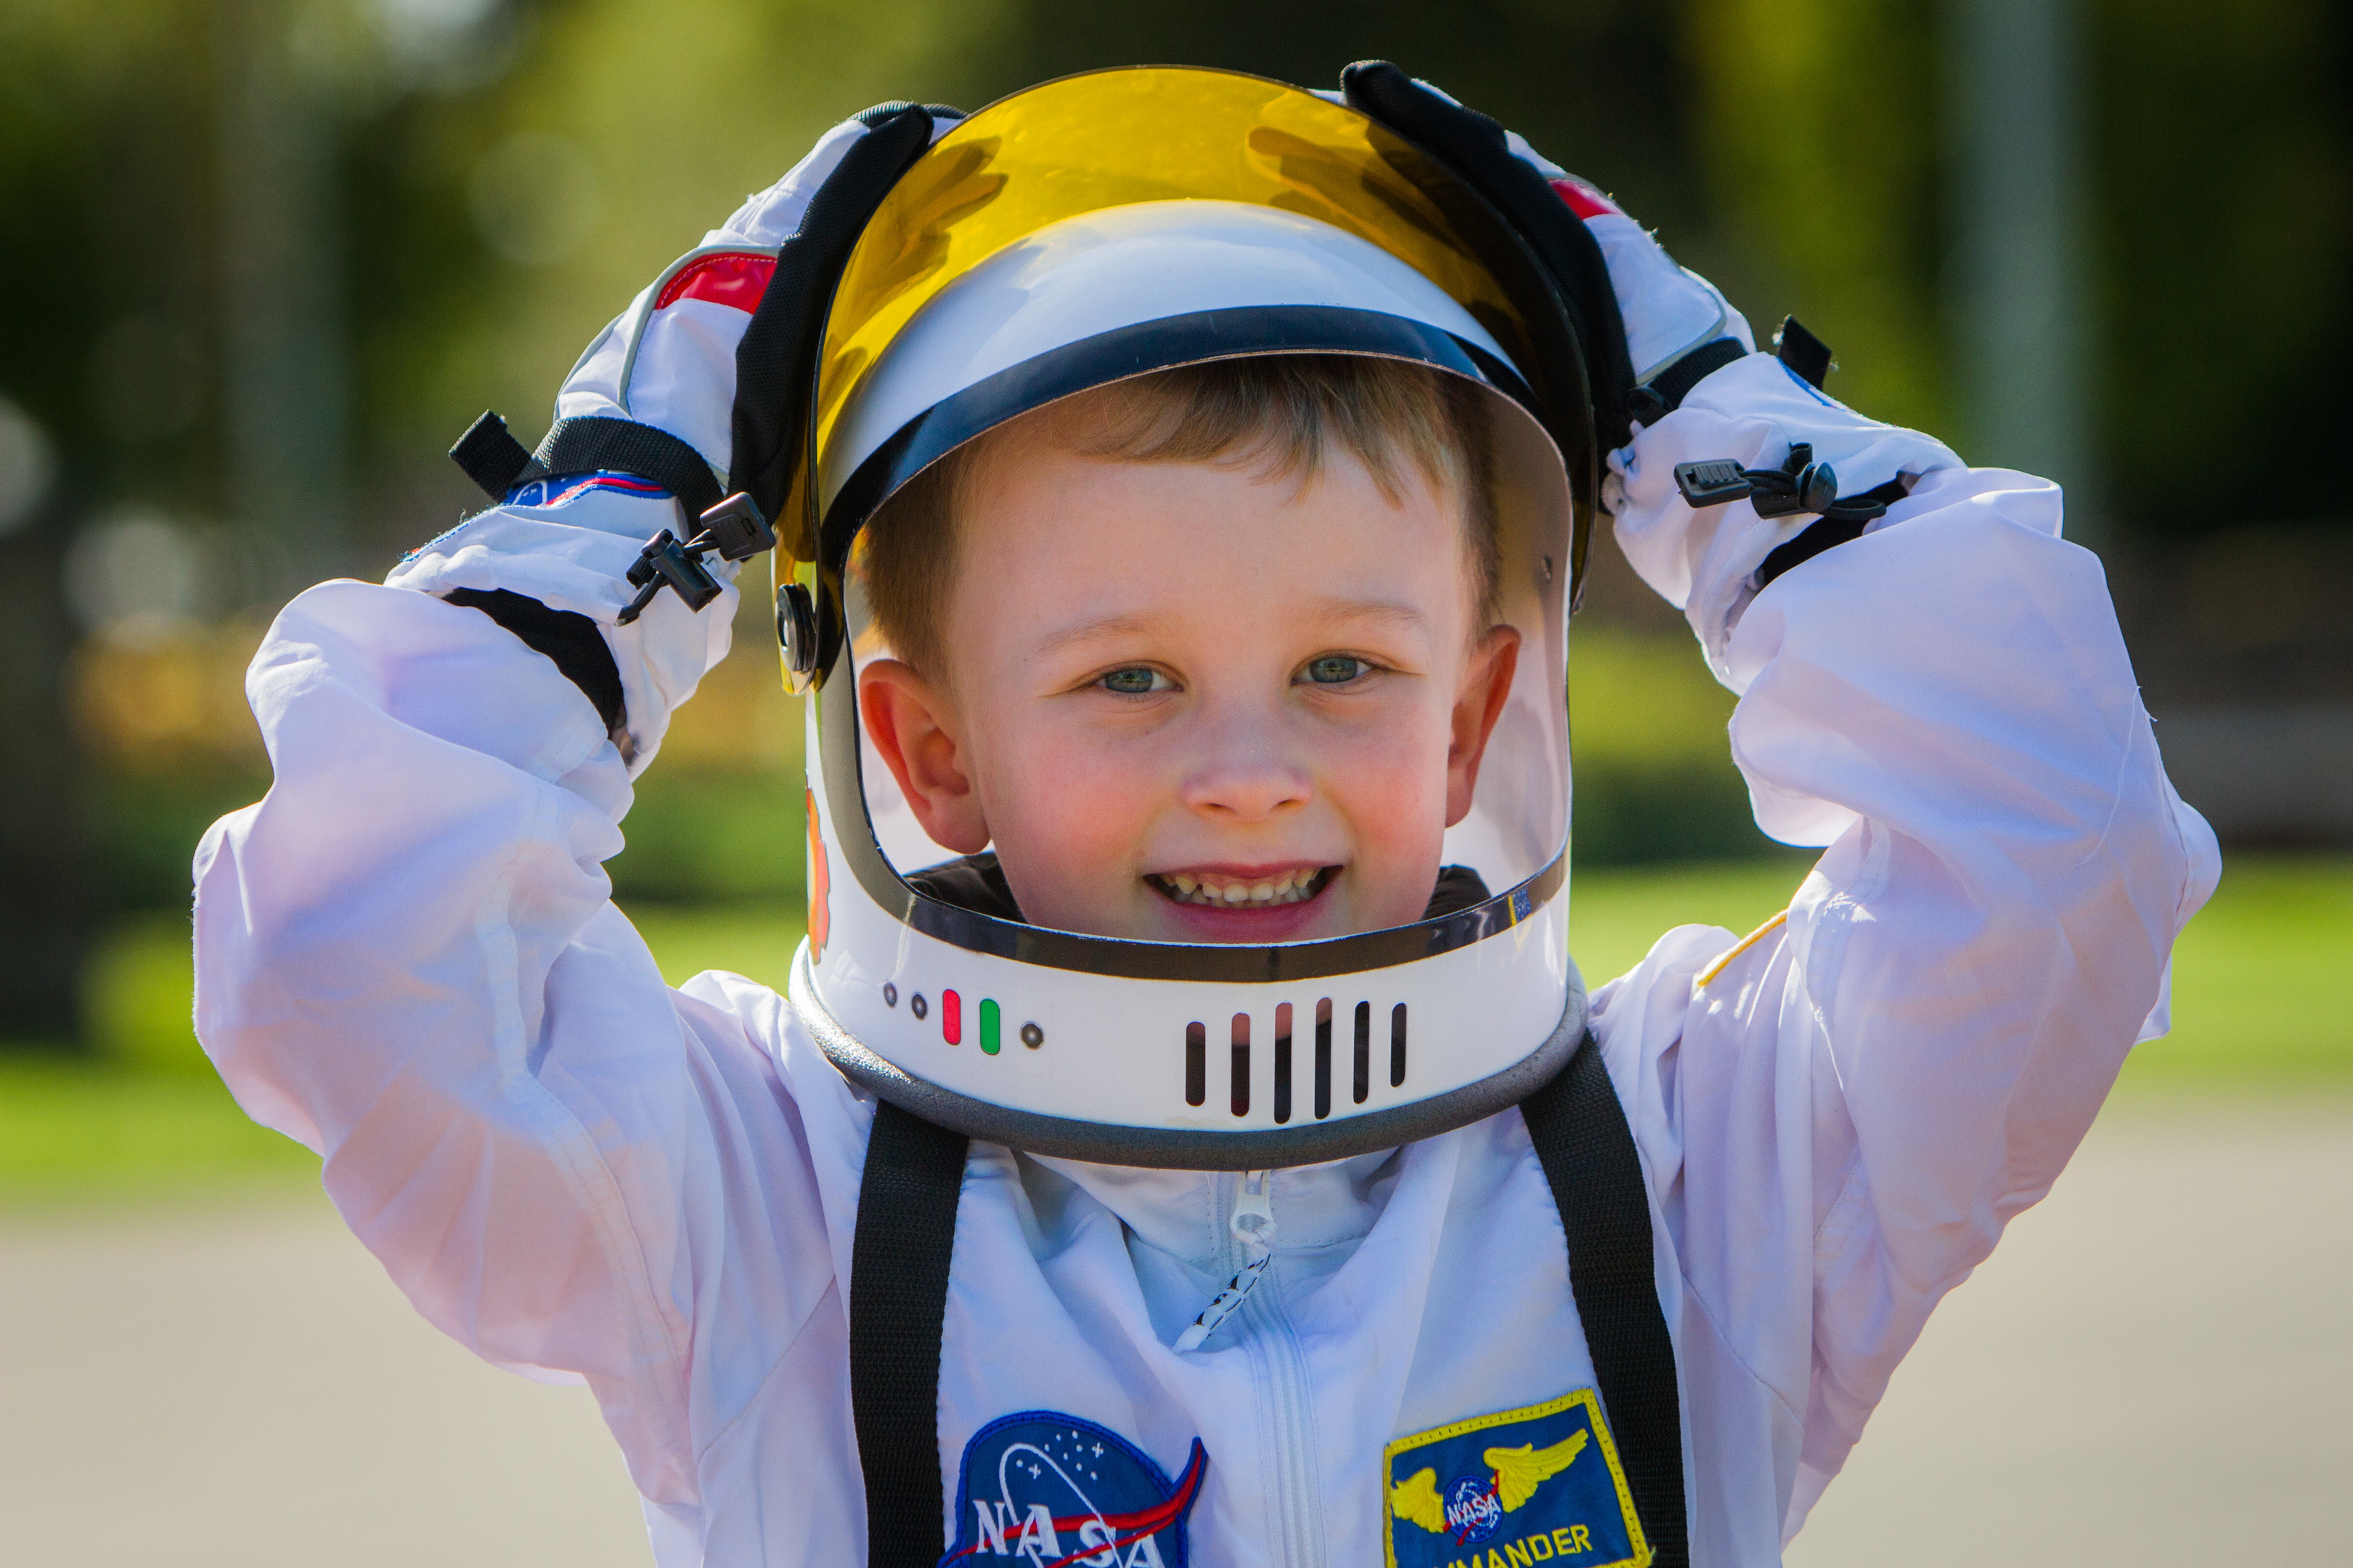 Samuel Mckay (aged 5) from Kinross at the Out of This World event.